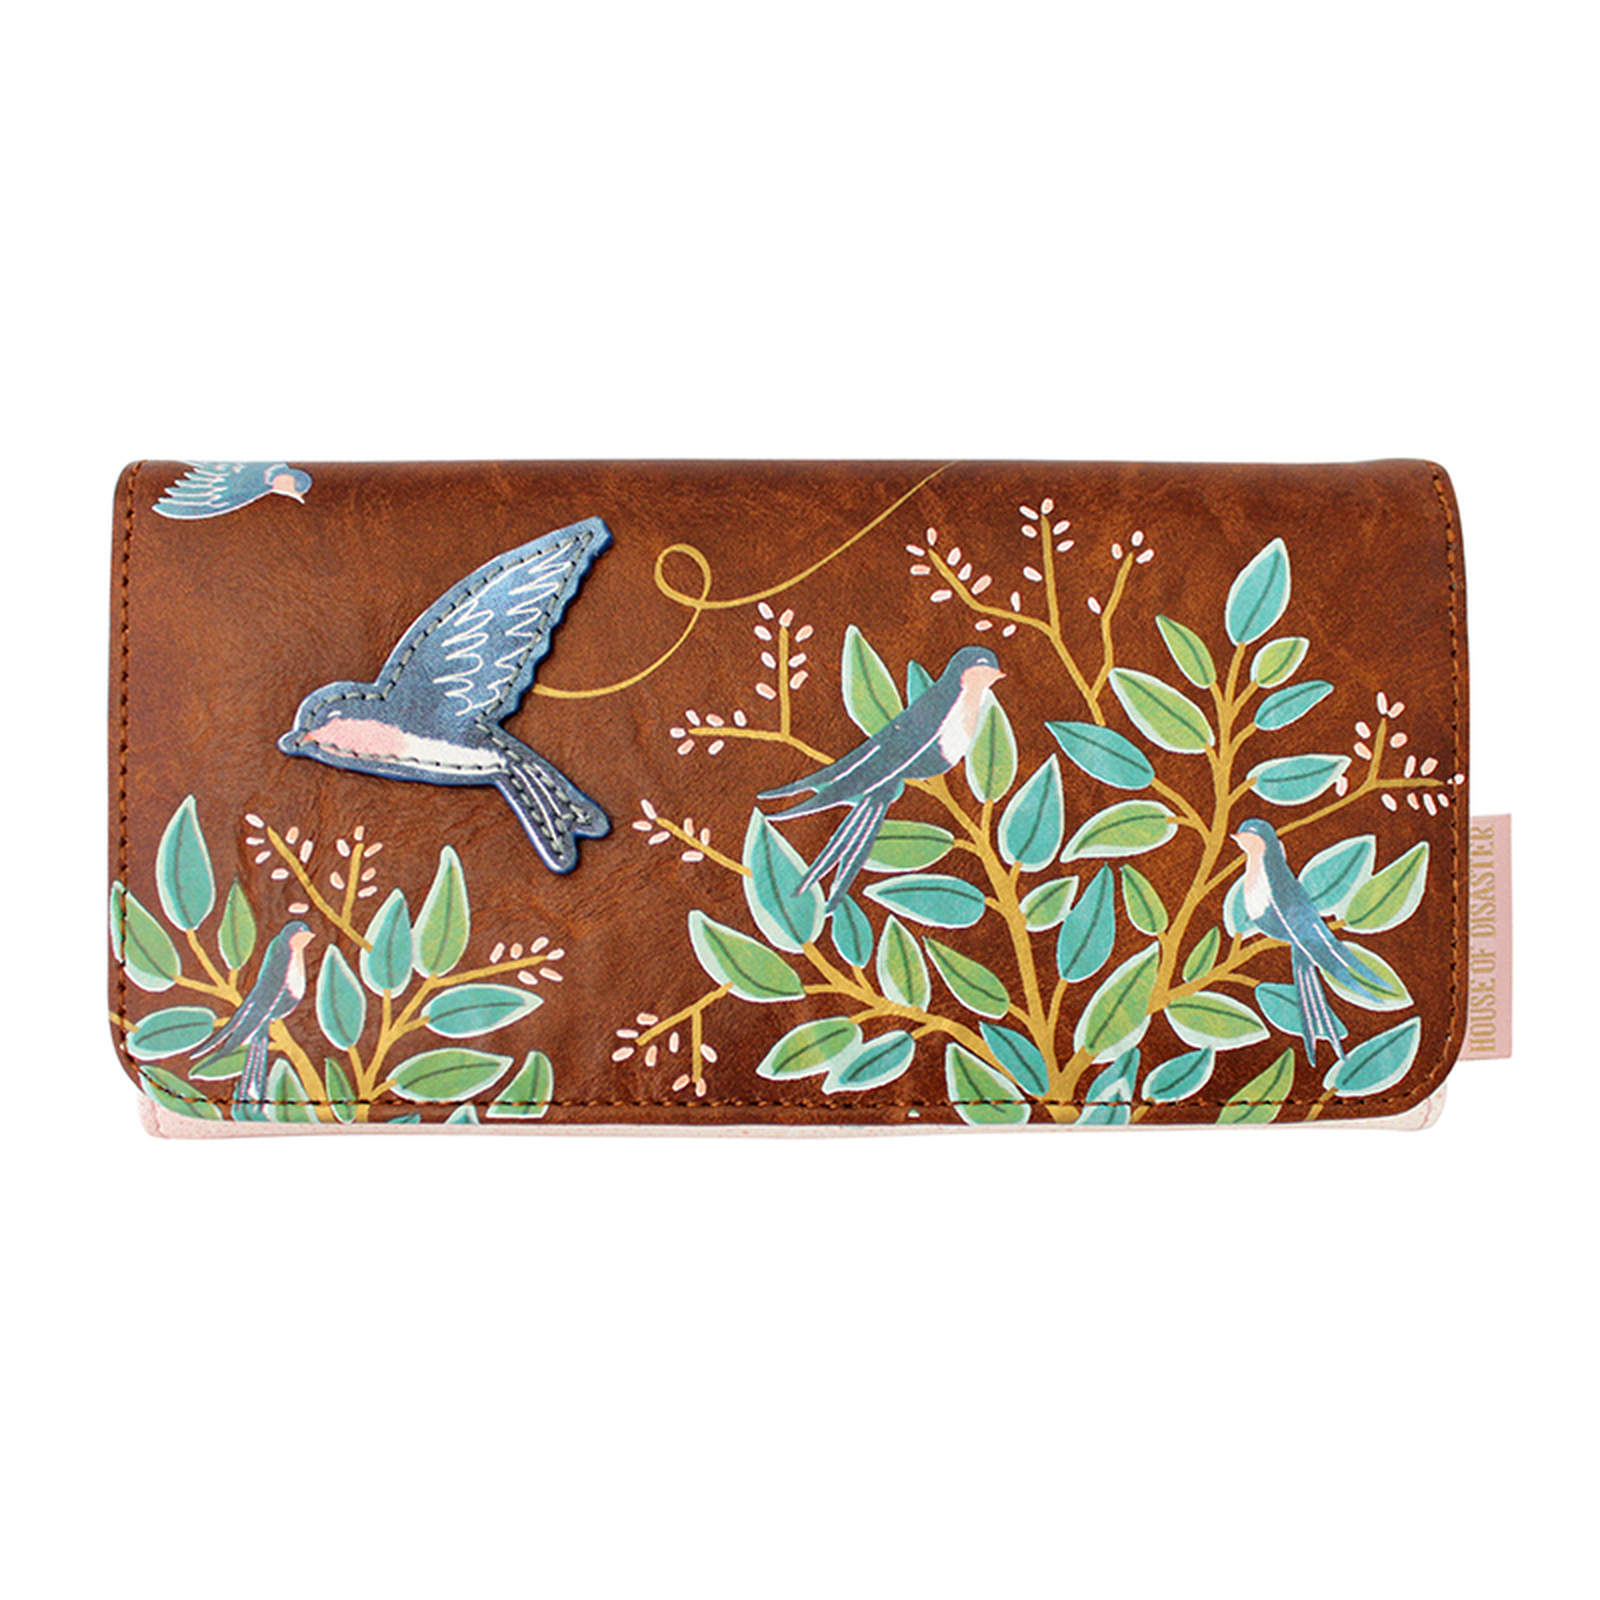 Disaster brown wallet Secret Garden Bird Wallet